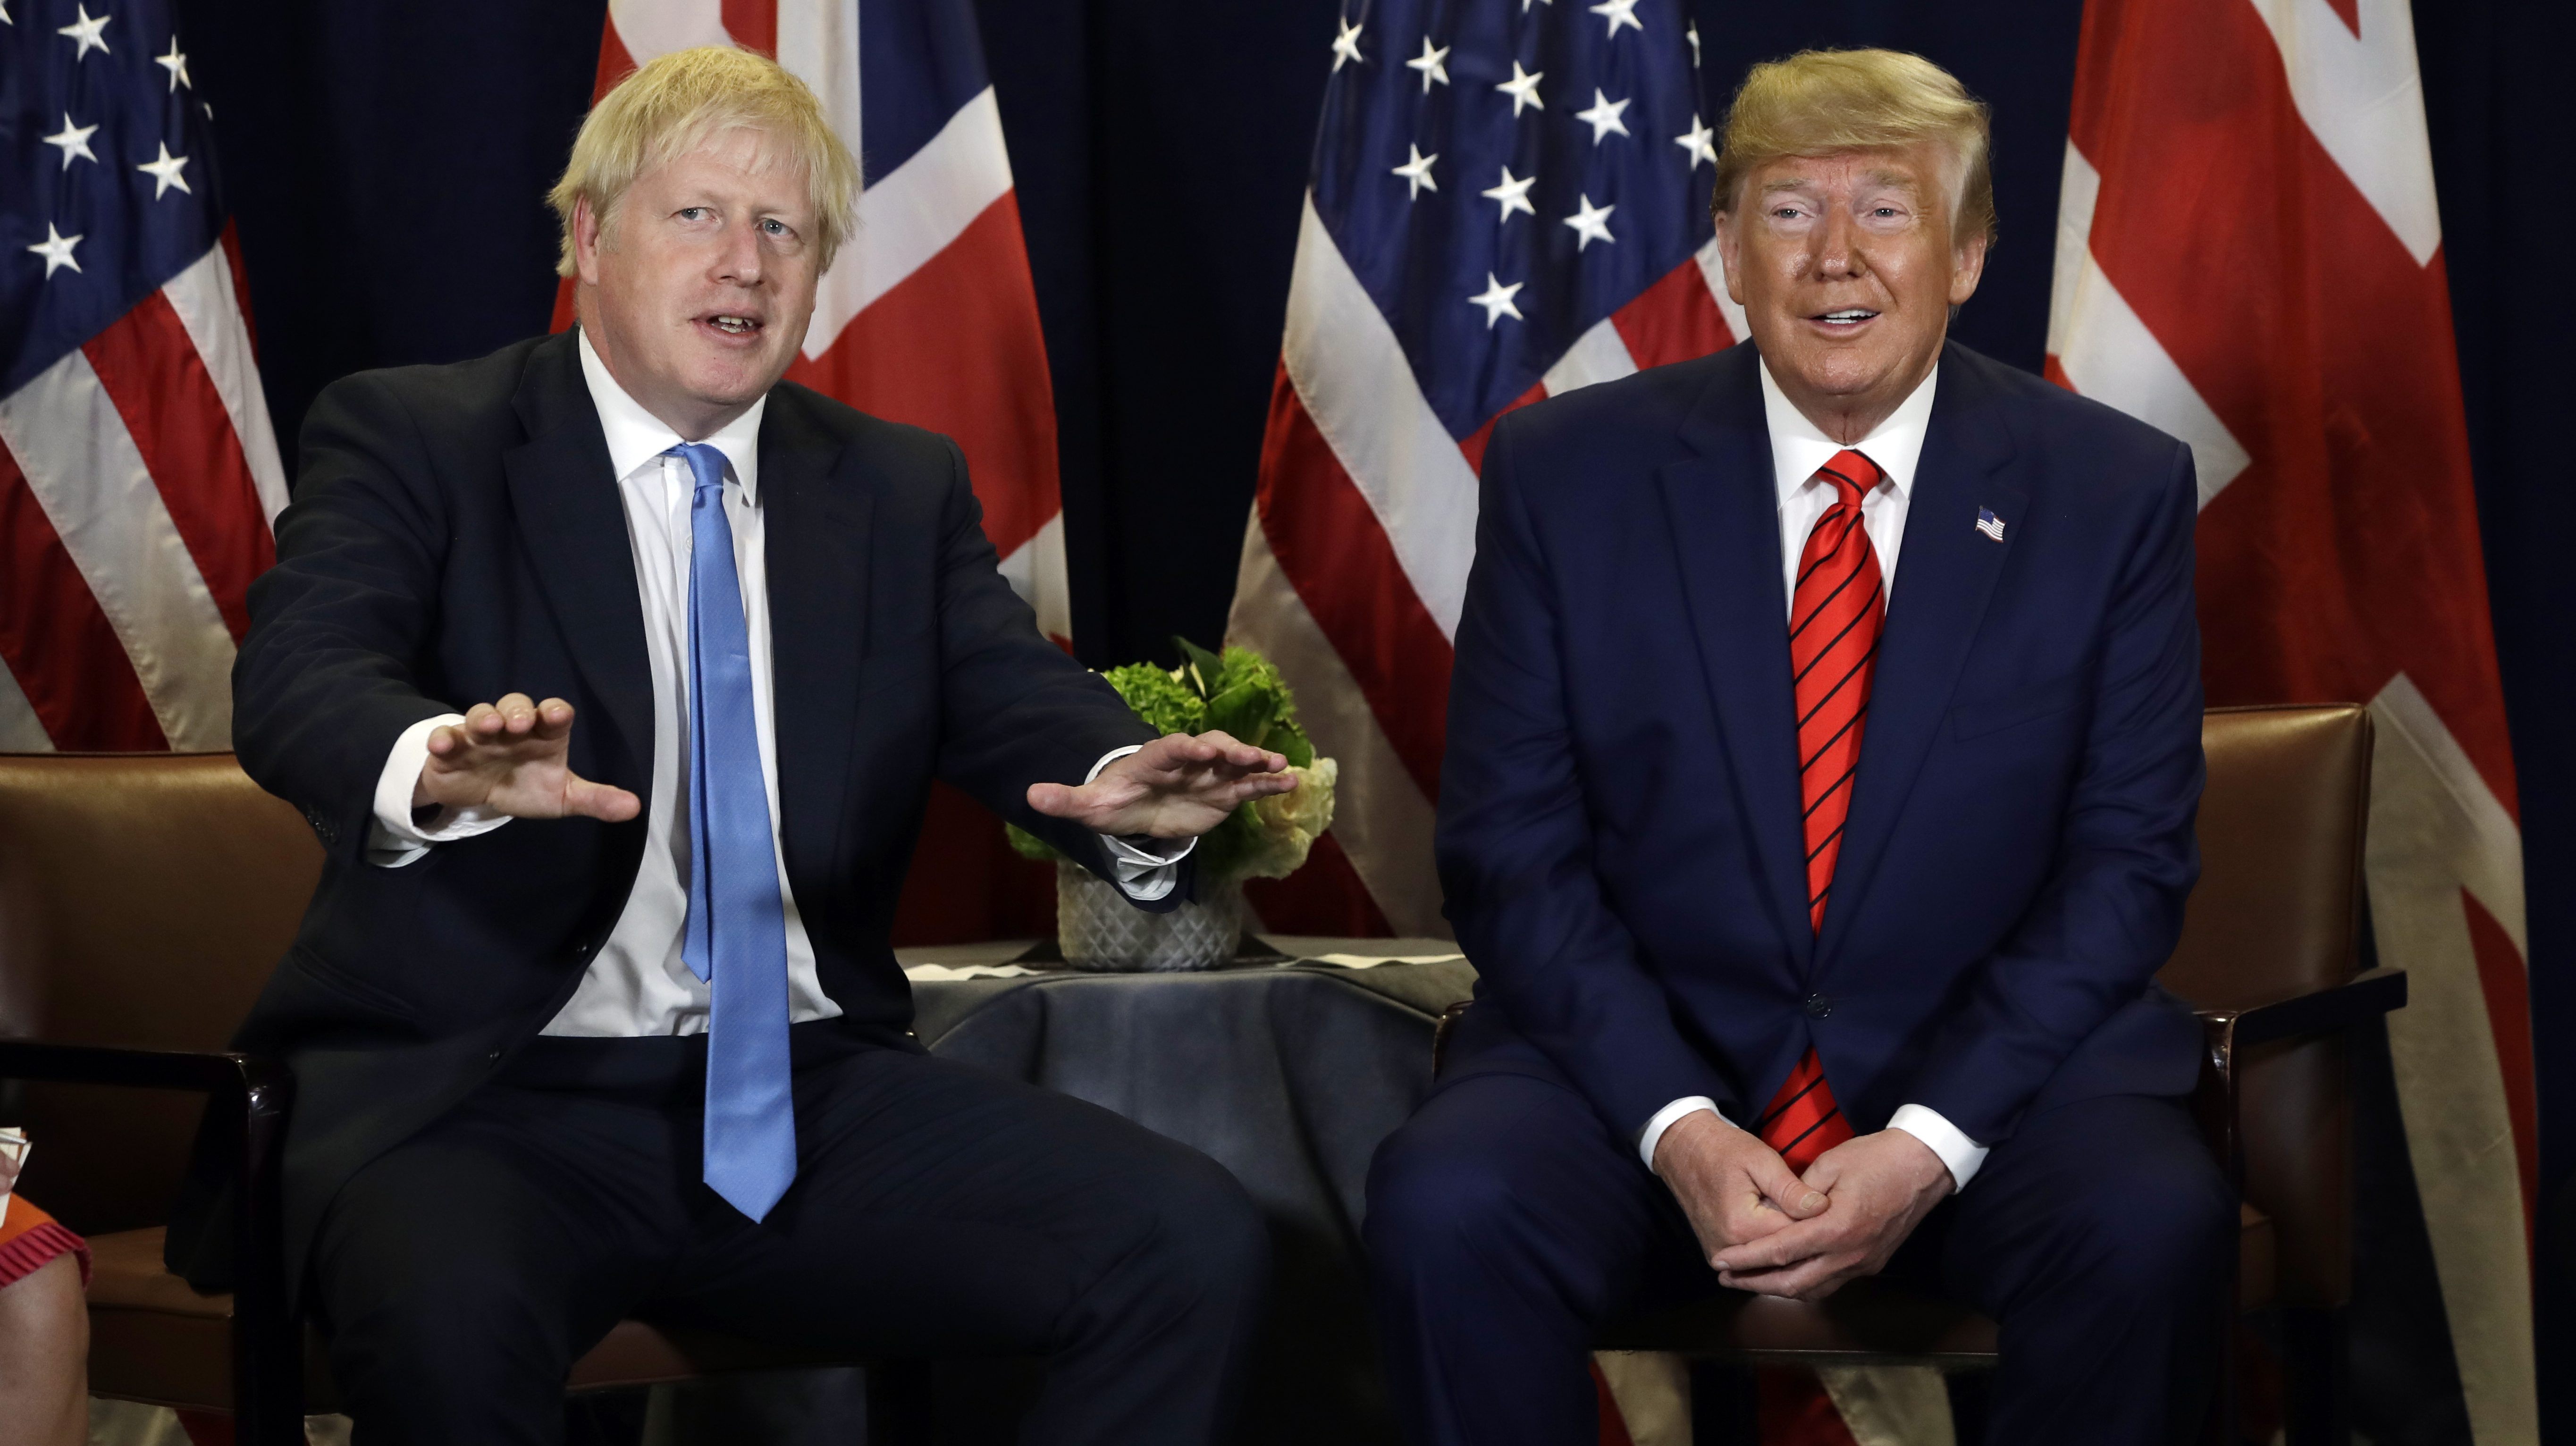 President Donald Trump meets with British Prime Minister Boris Johnson at the United Nations General Assembly, Tuesday, Sept. 24, 2019, in New York.